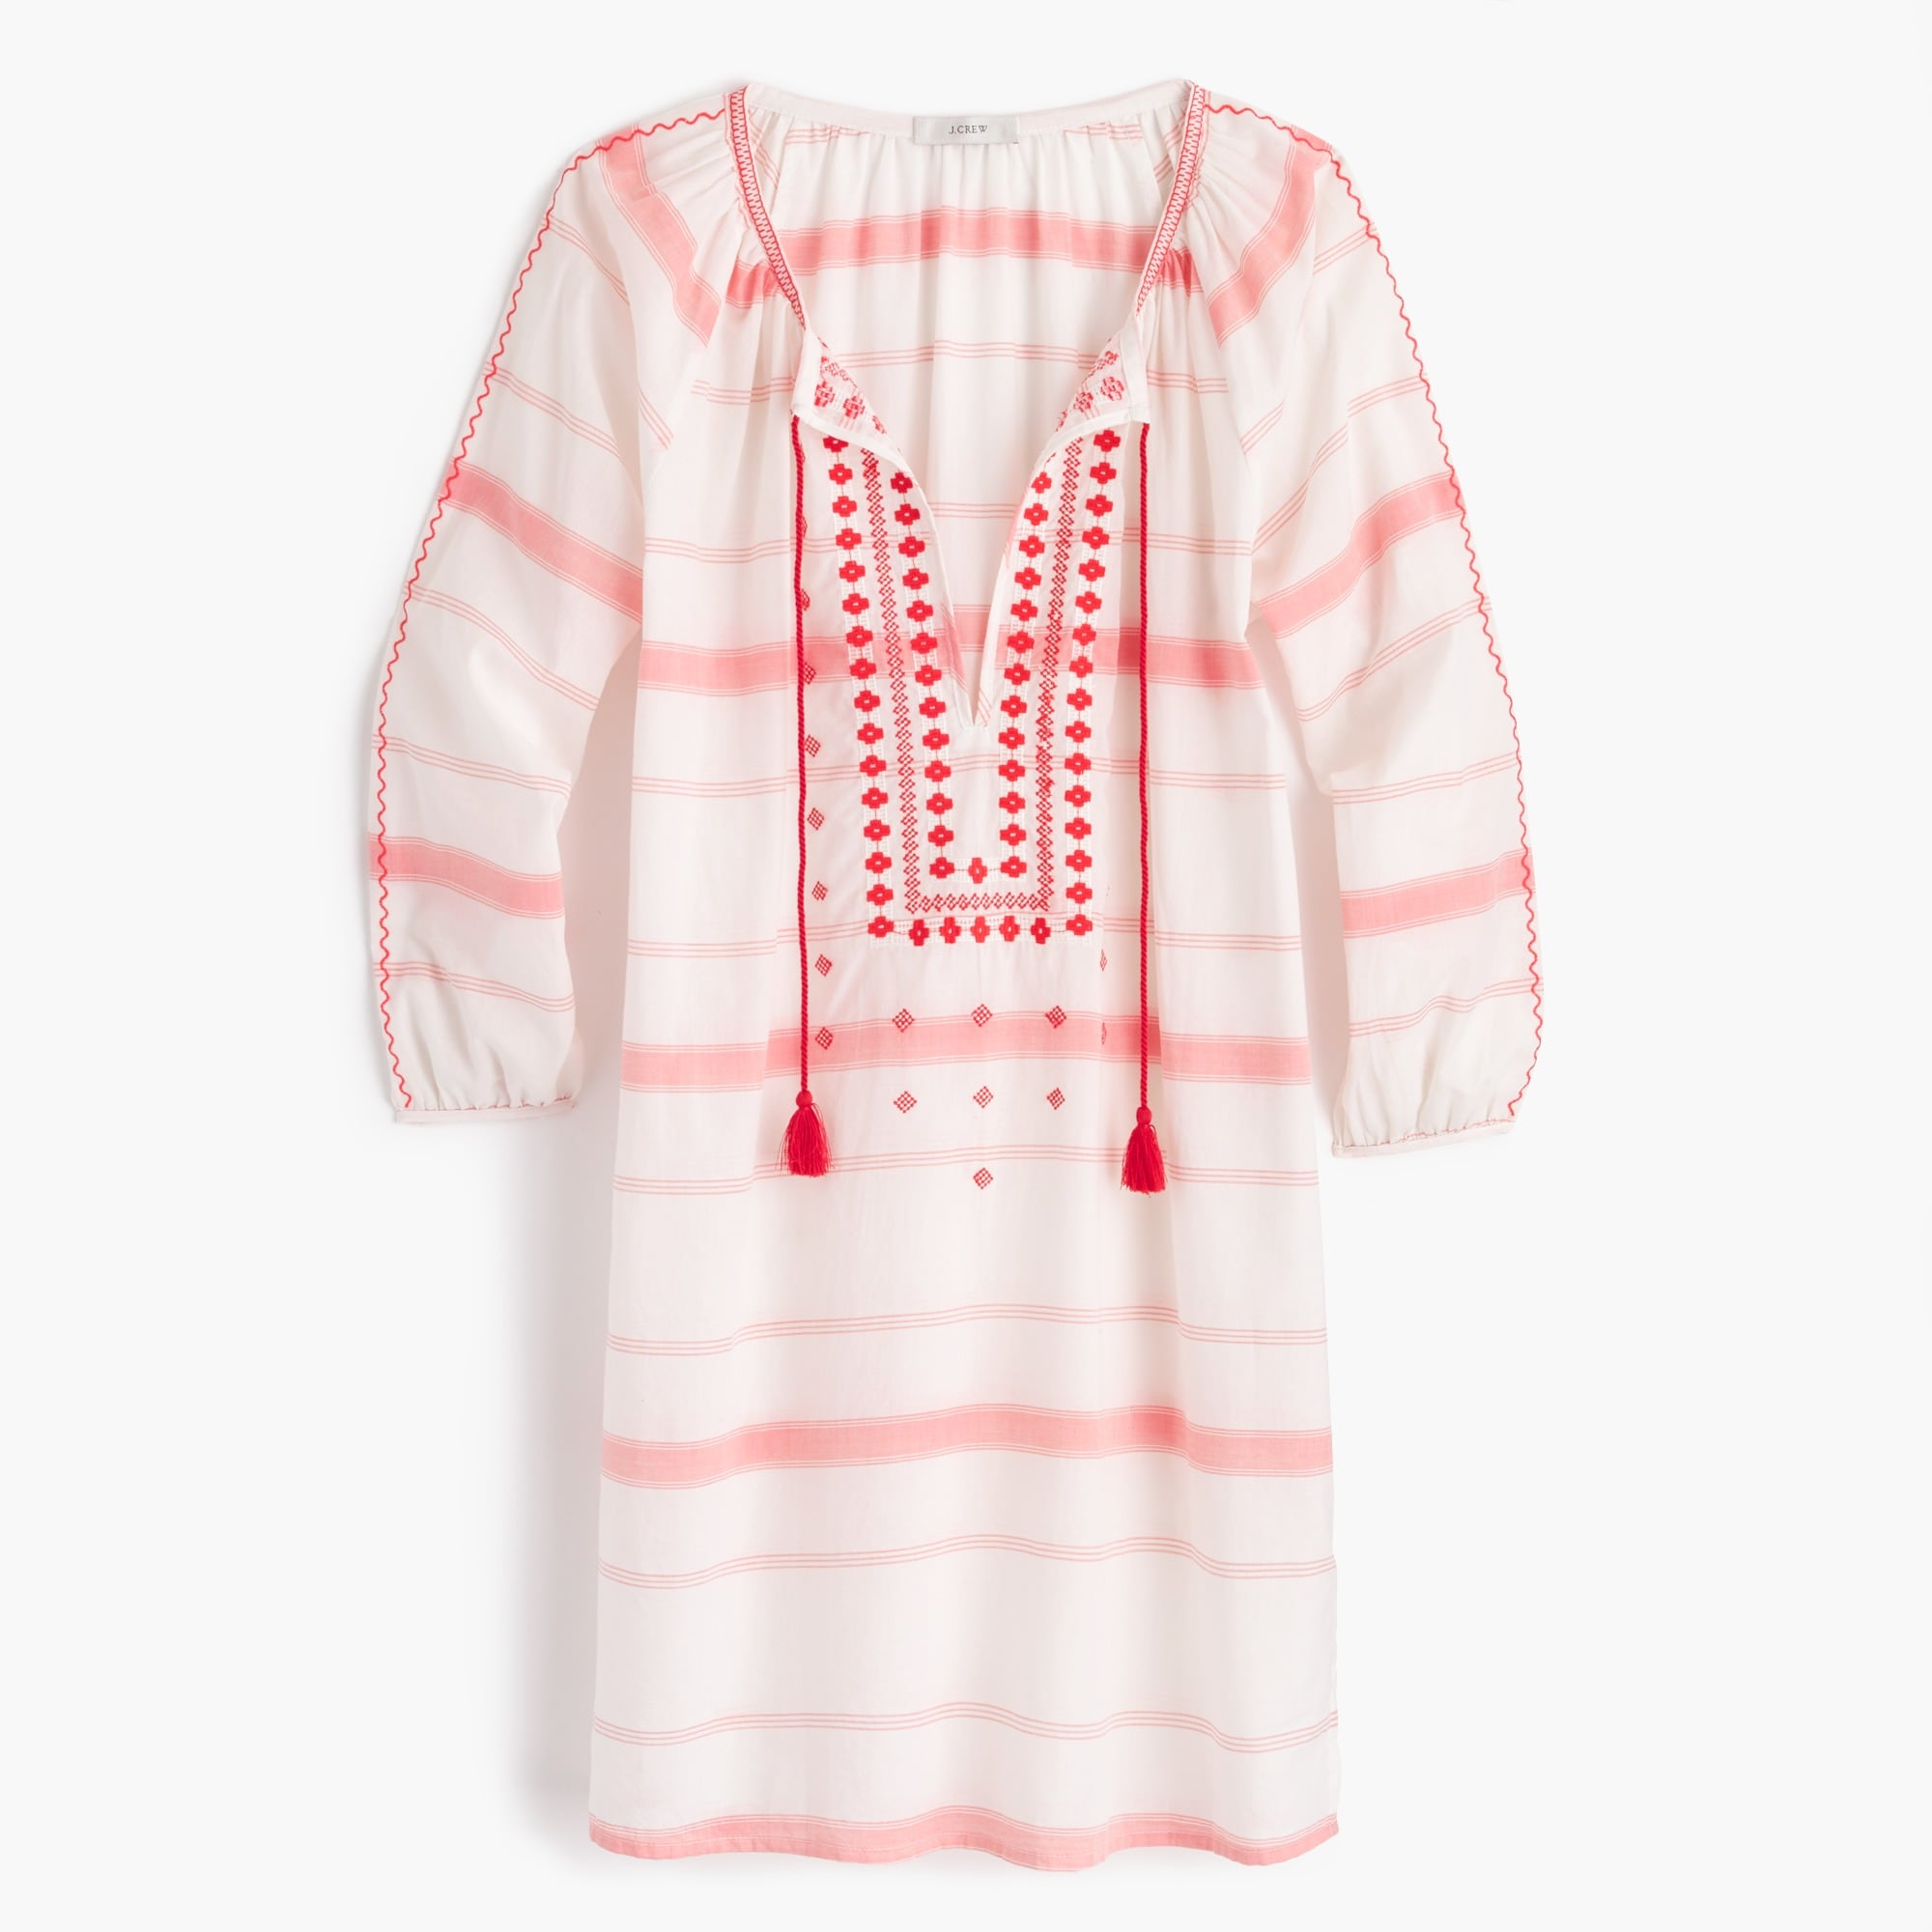 Image 2 for Embroidered striped tunic